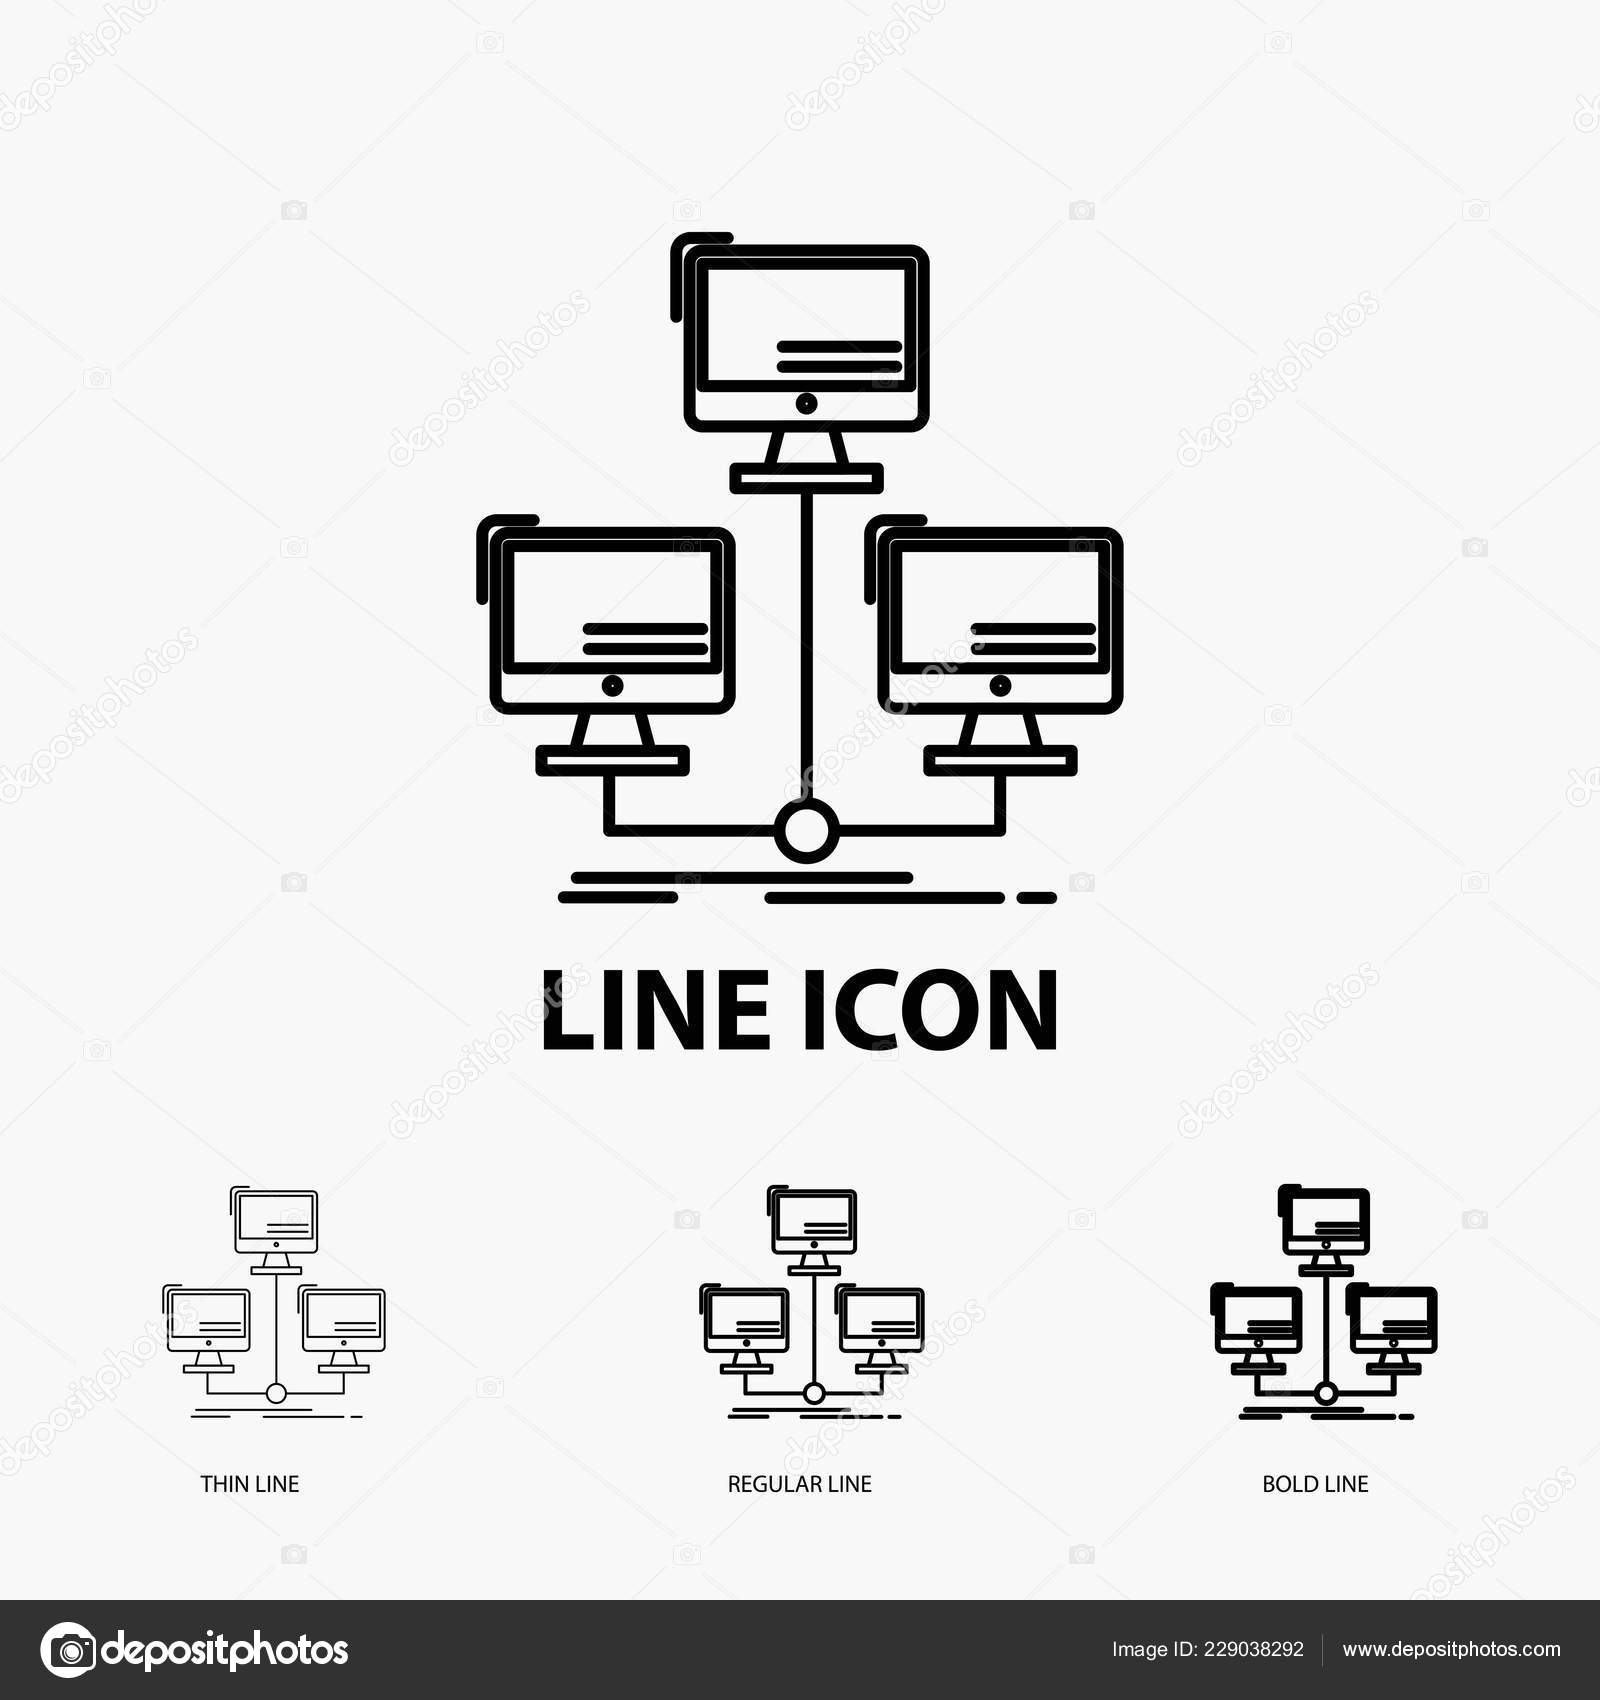 wiring diagram icon wiring diagram database Color Coded Wiring Diagrams puter network diagram icon wiring diagram database wiring diagram symbols chart network server diagram icon wiring